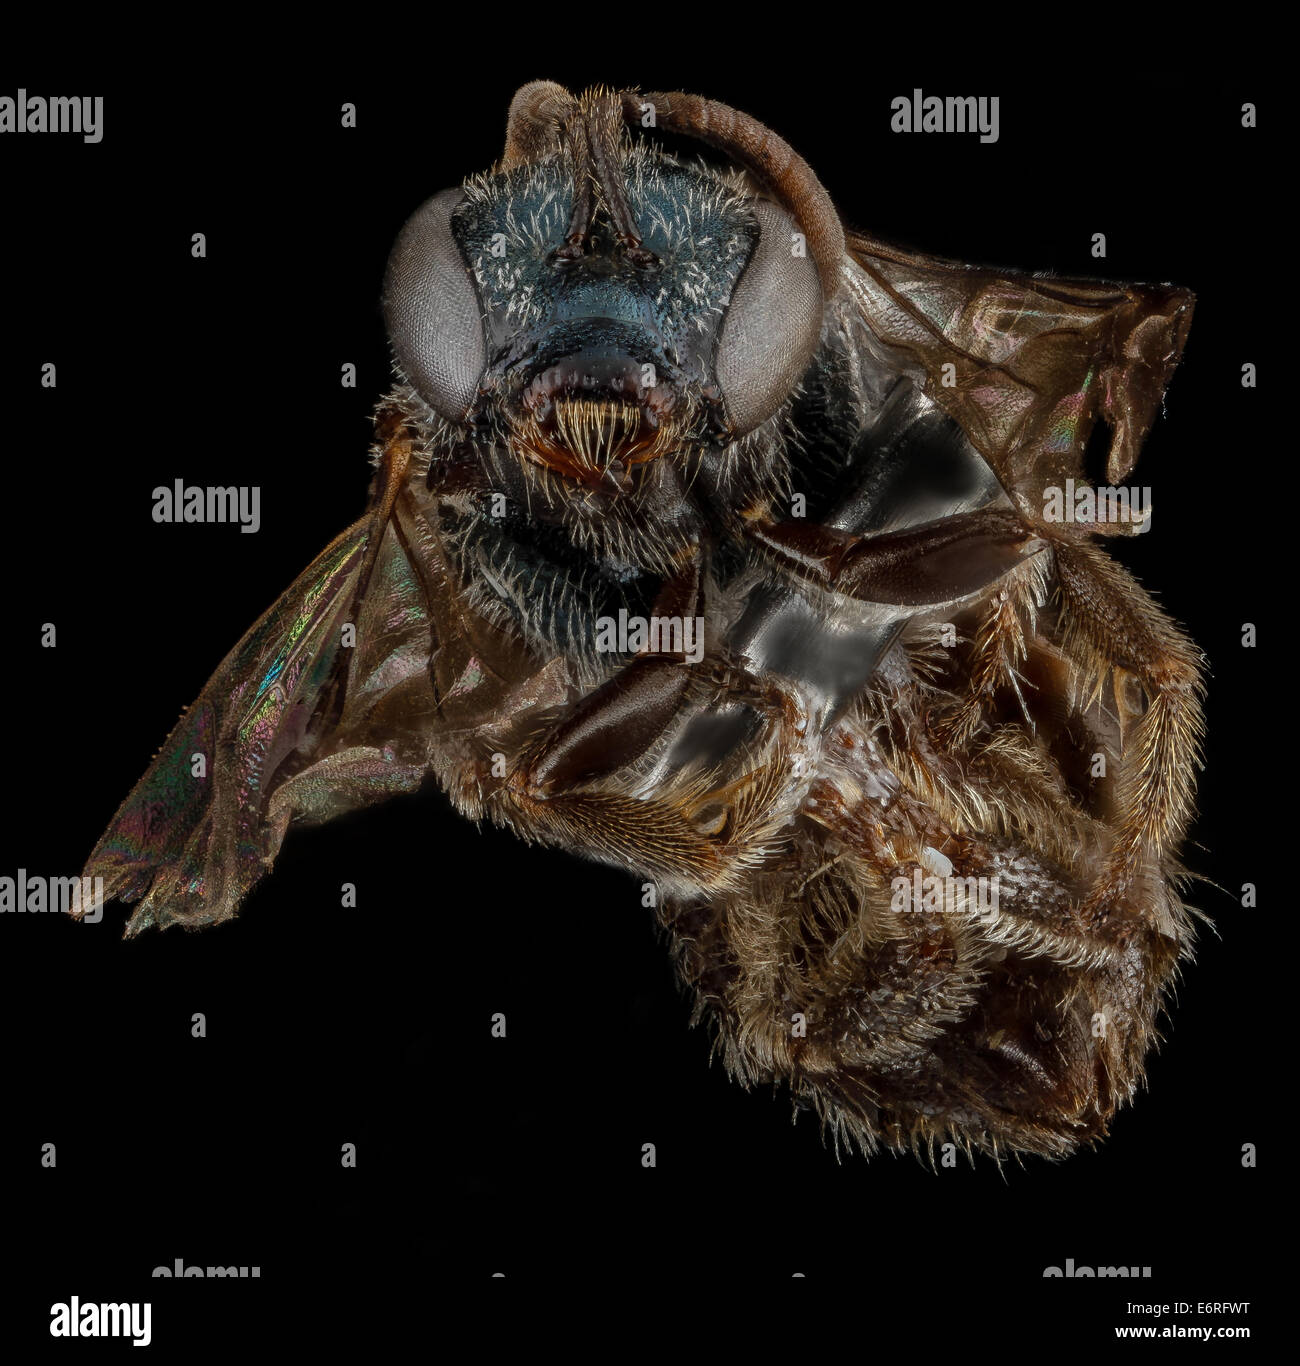 Lasioglossum halophitum, F, face, Florida, St Johns County_2013-02-22-185728 ZS PMax_10683338883_o Captured as part - Stock Image